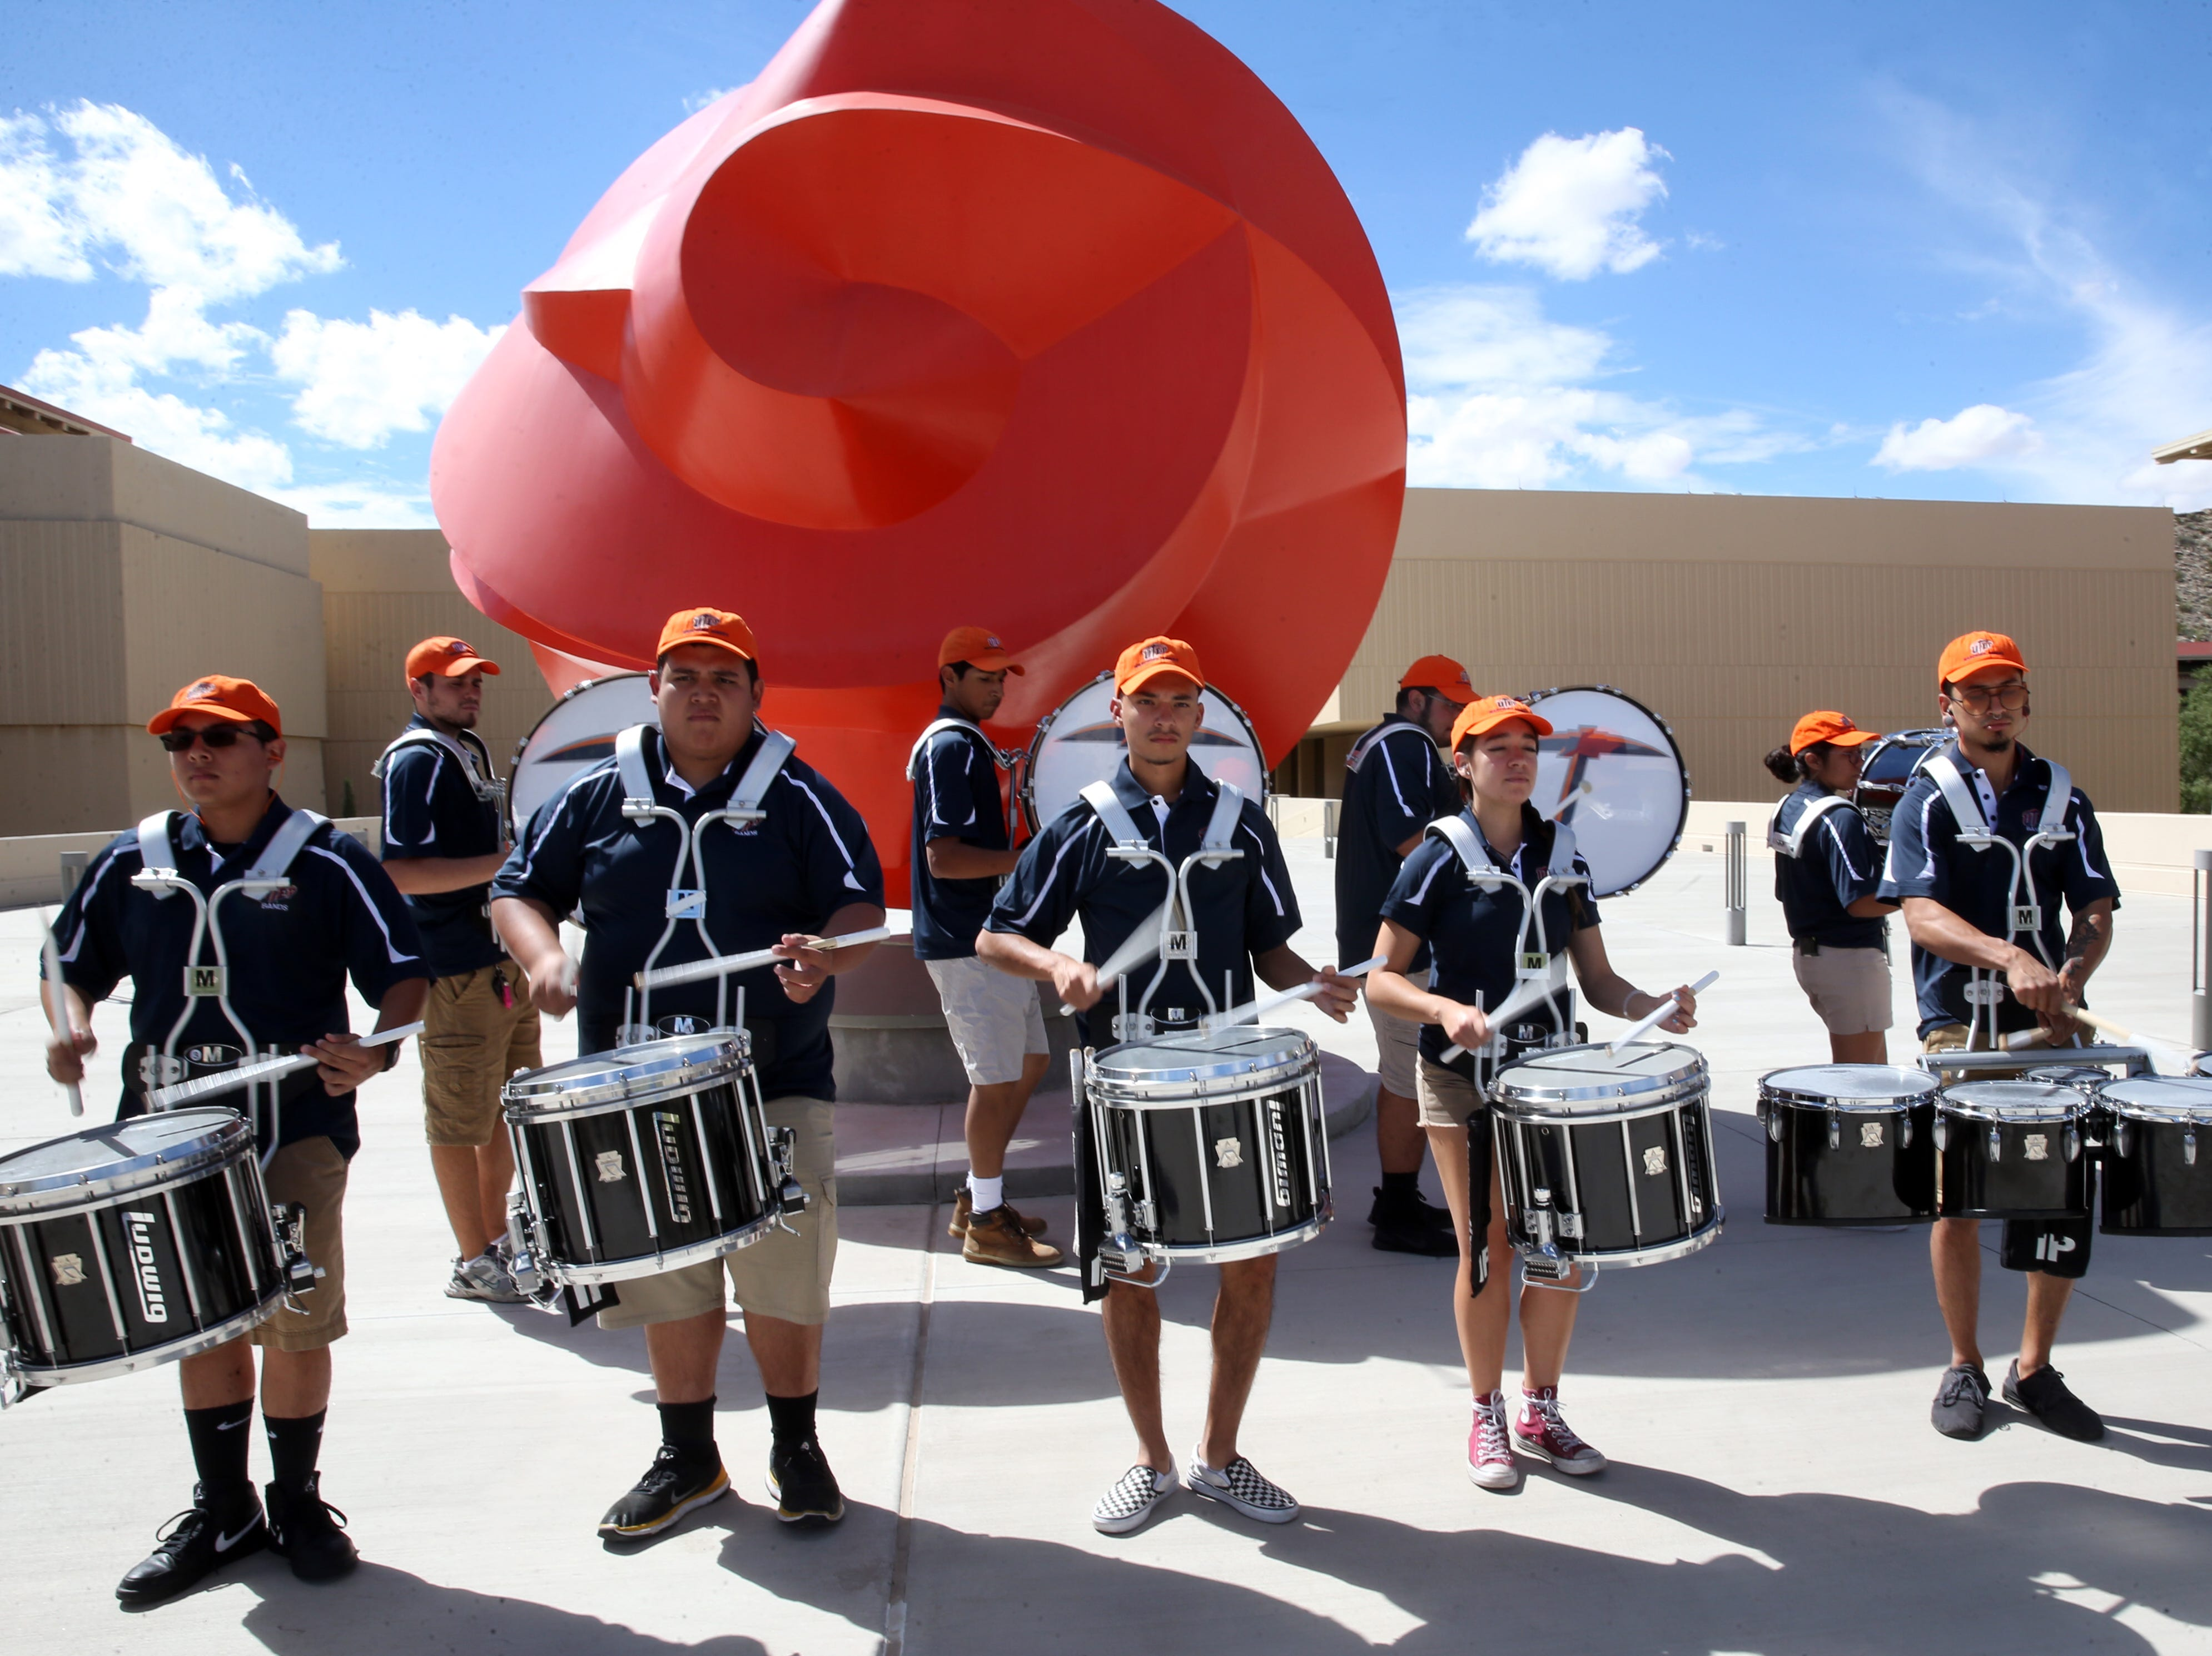 The UTEP drum line performs at the steps of the Fox Fine Arts building Thursday on the UTEP campus.